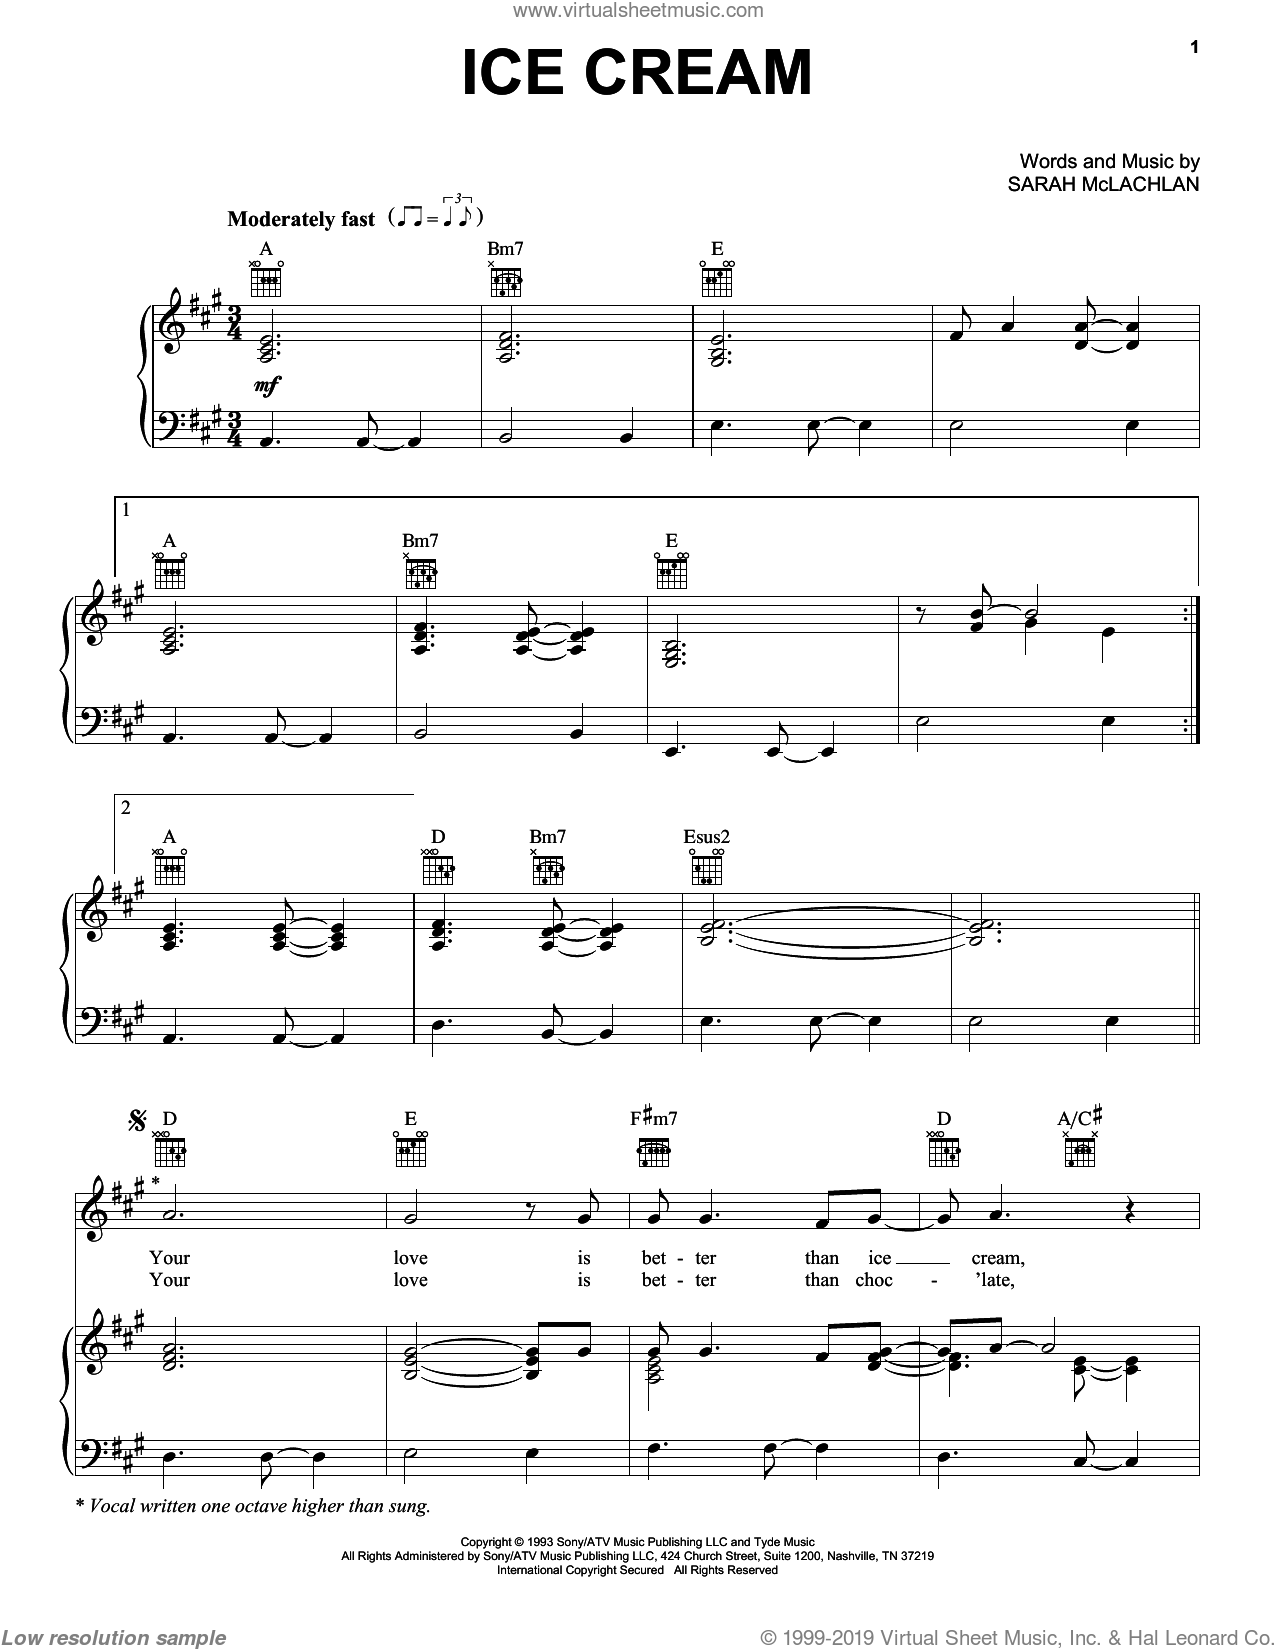 Ice Cream sheet music for voice, piano or guitar by Sarah McLachlan. Score Image Preview.